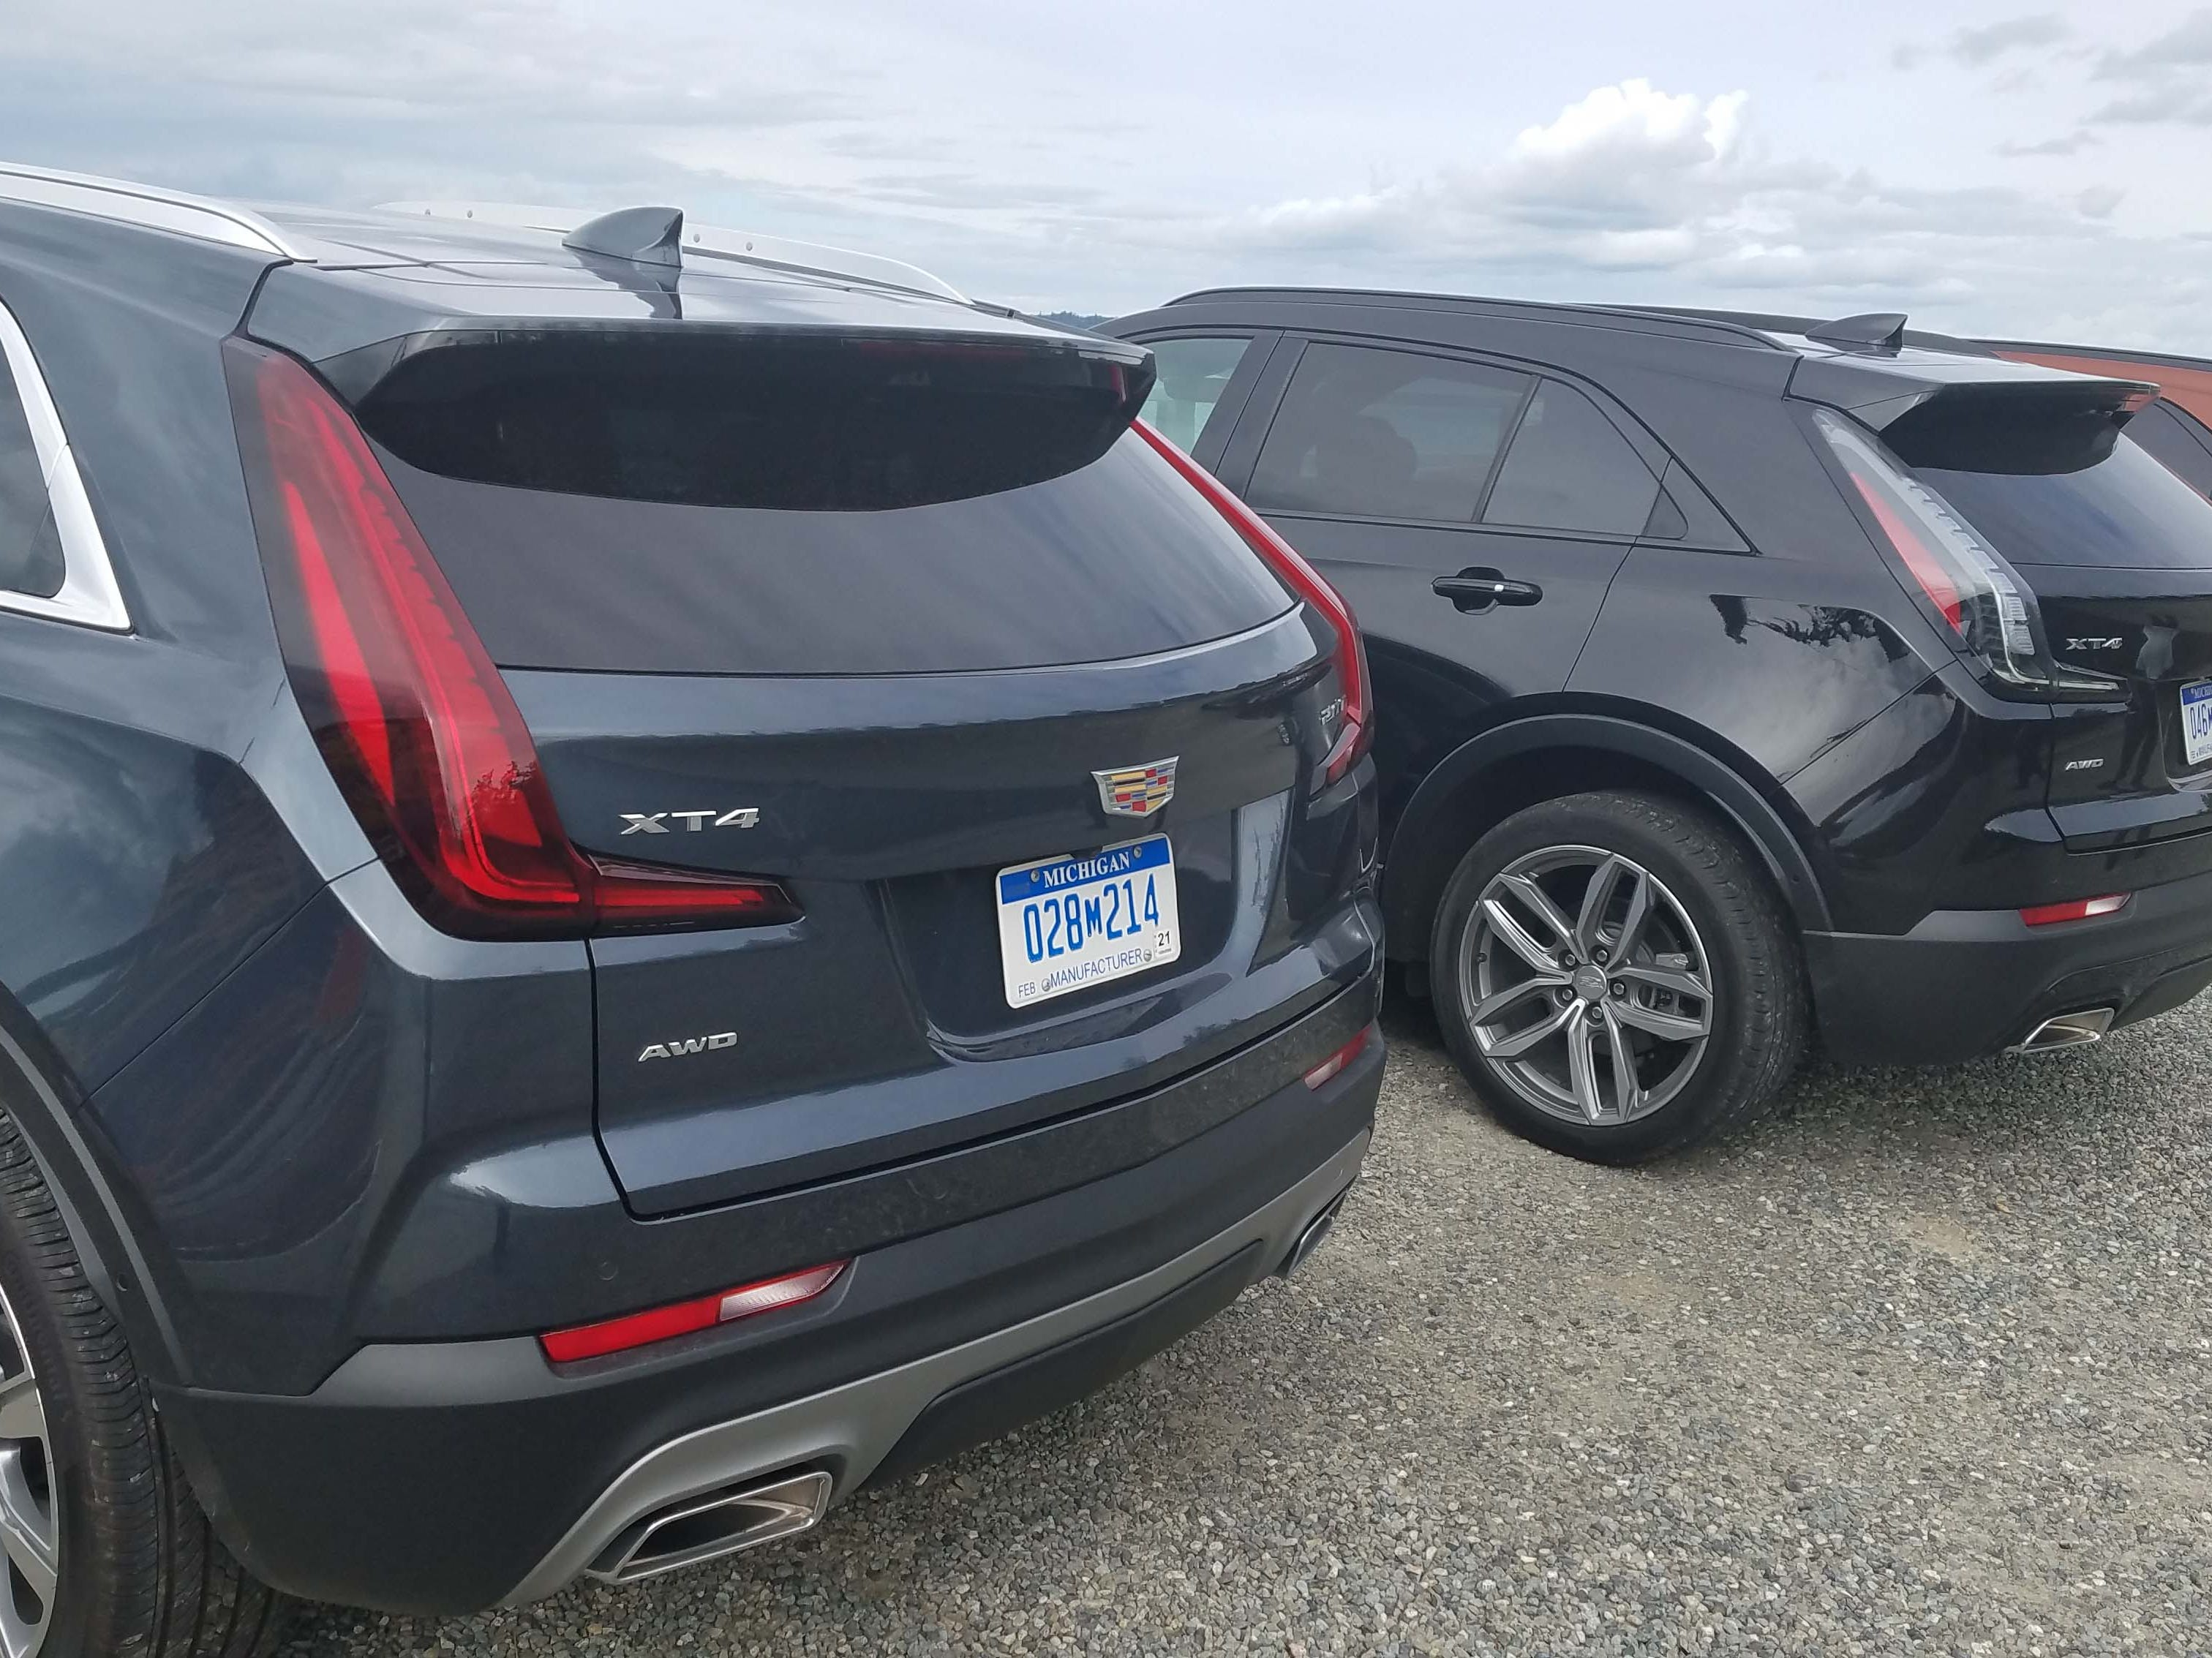 The 2019 Cadillac XT4 features two distinct trims: Premium Luxury and Sport. The latter is distinguished by its white LED rear tailights and black grille.